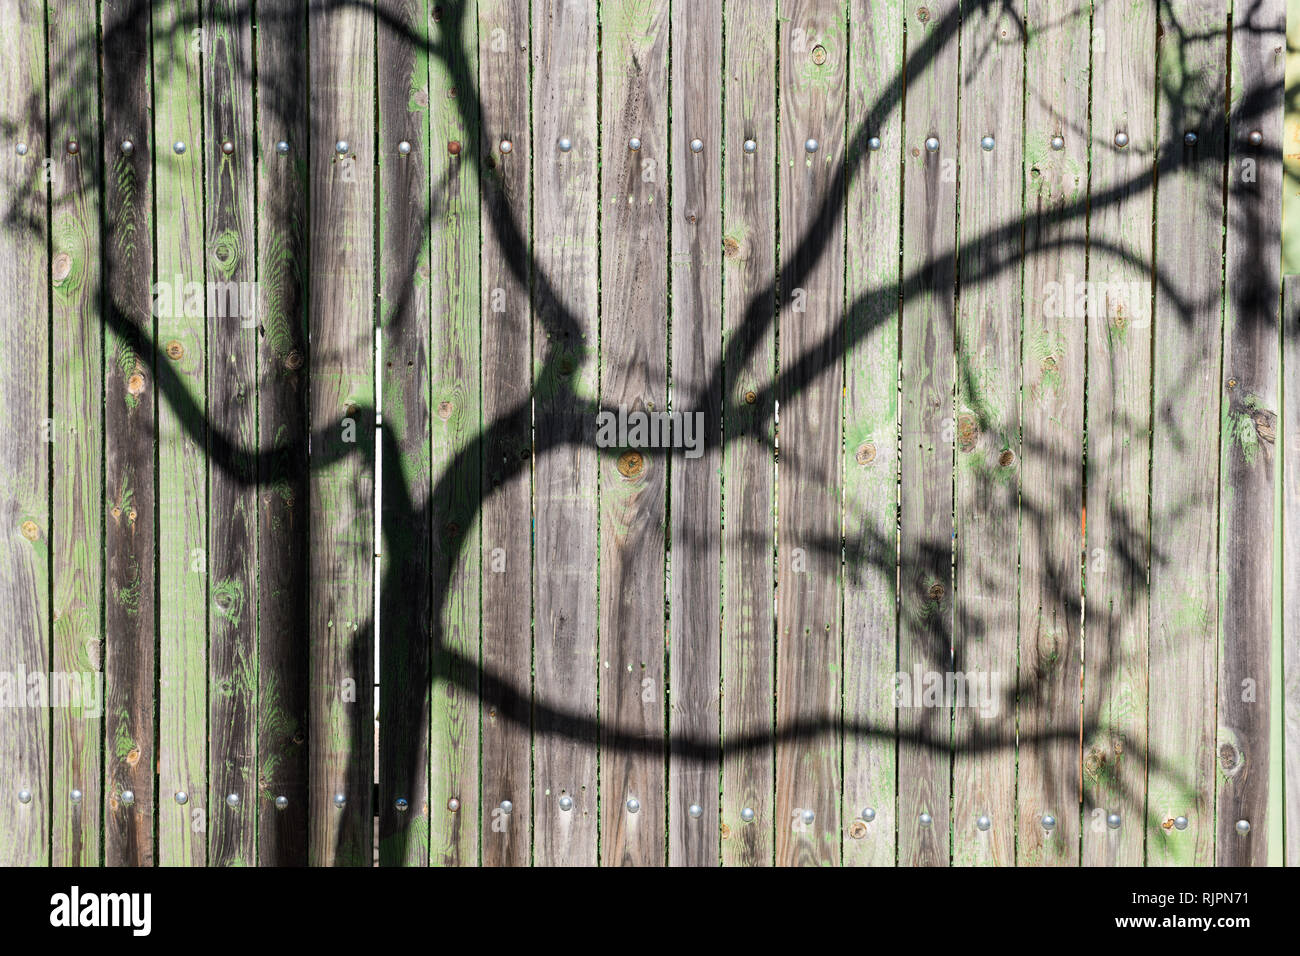 The shadow of the branches of a tree projected on an old green wooden fence - Stock Image